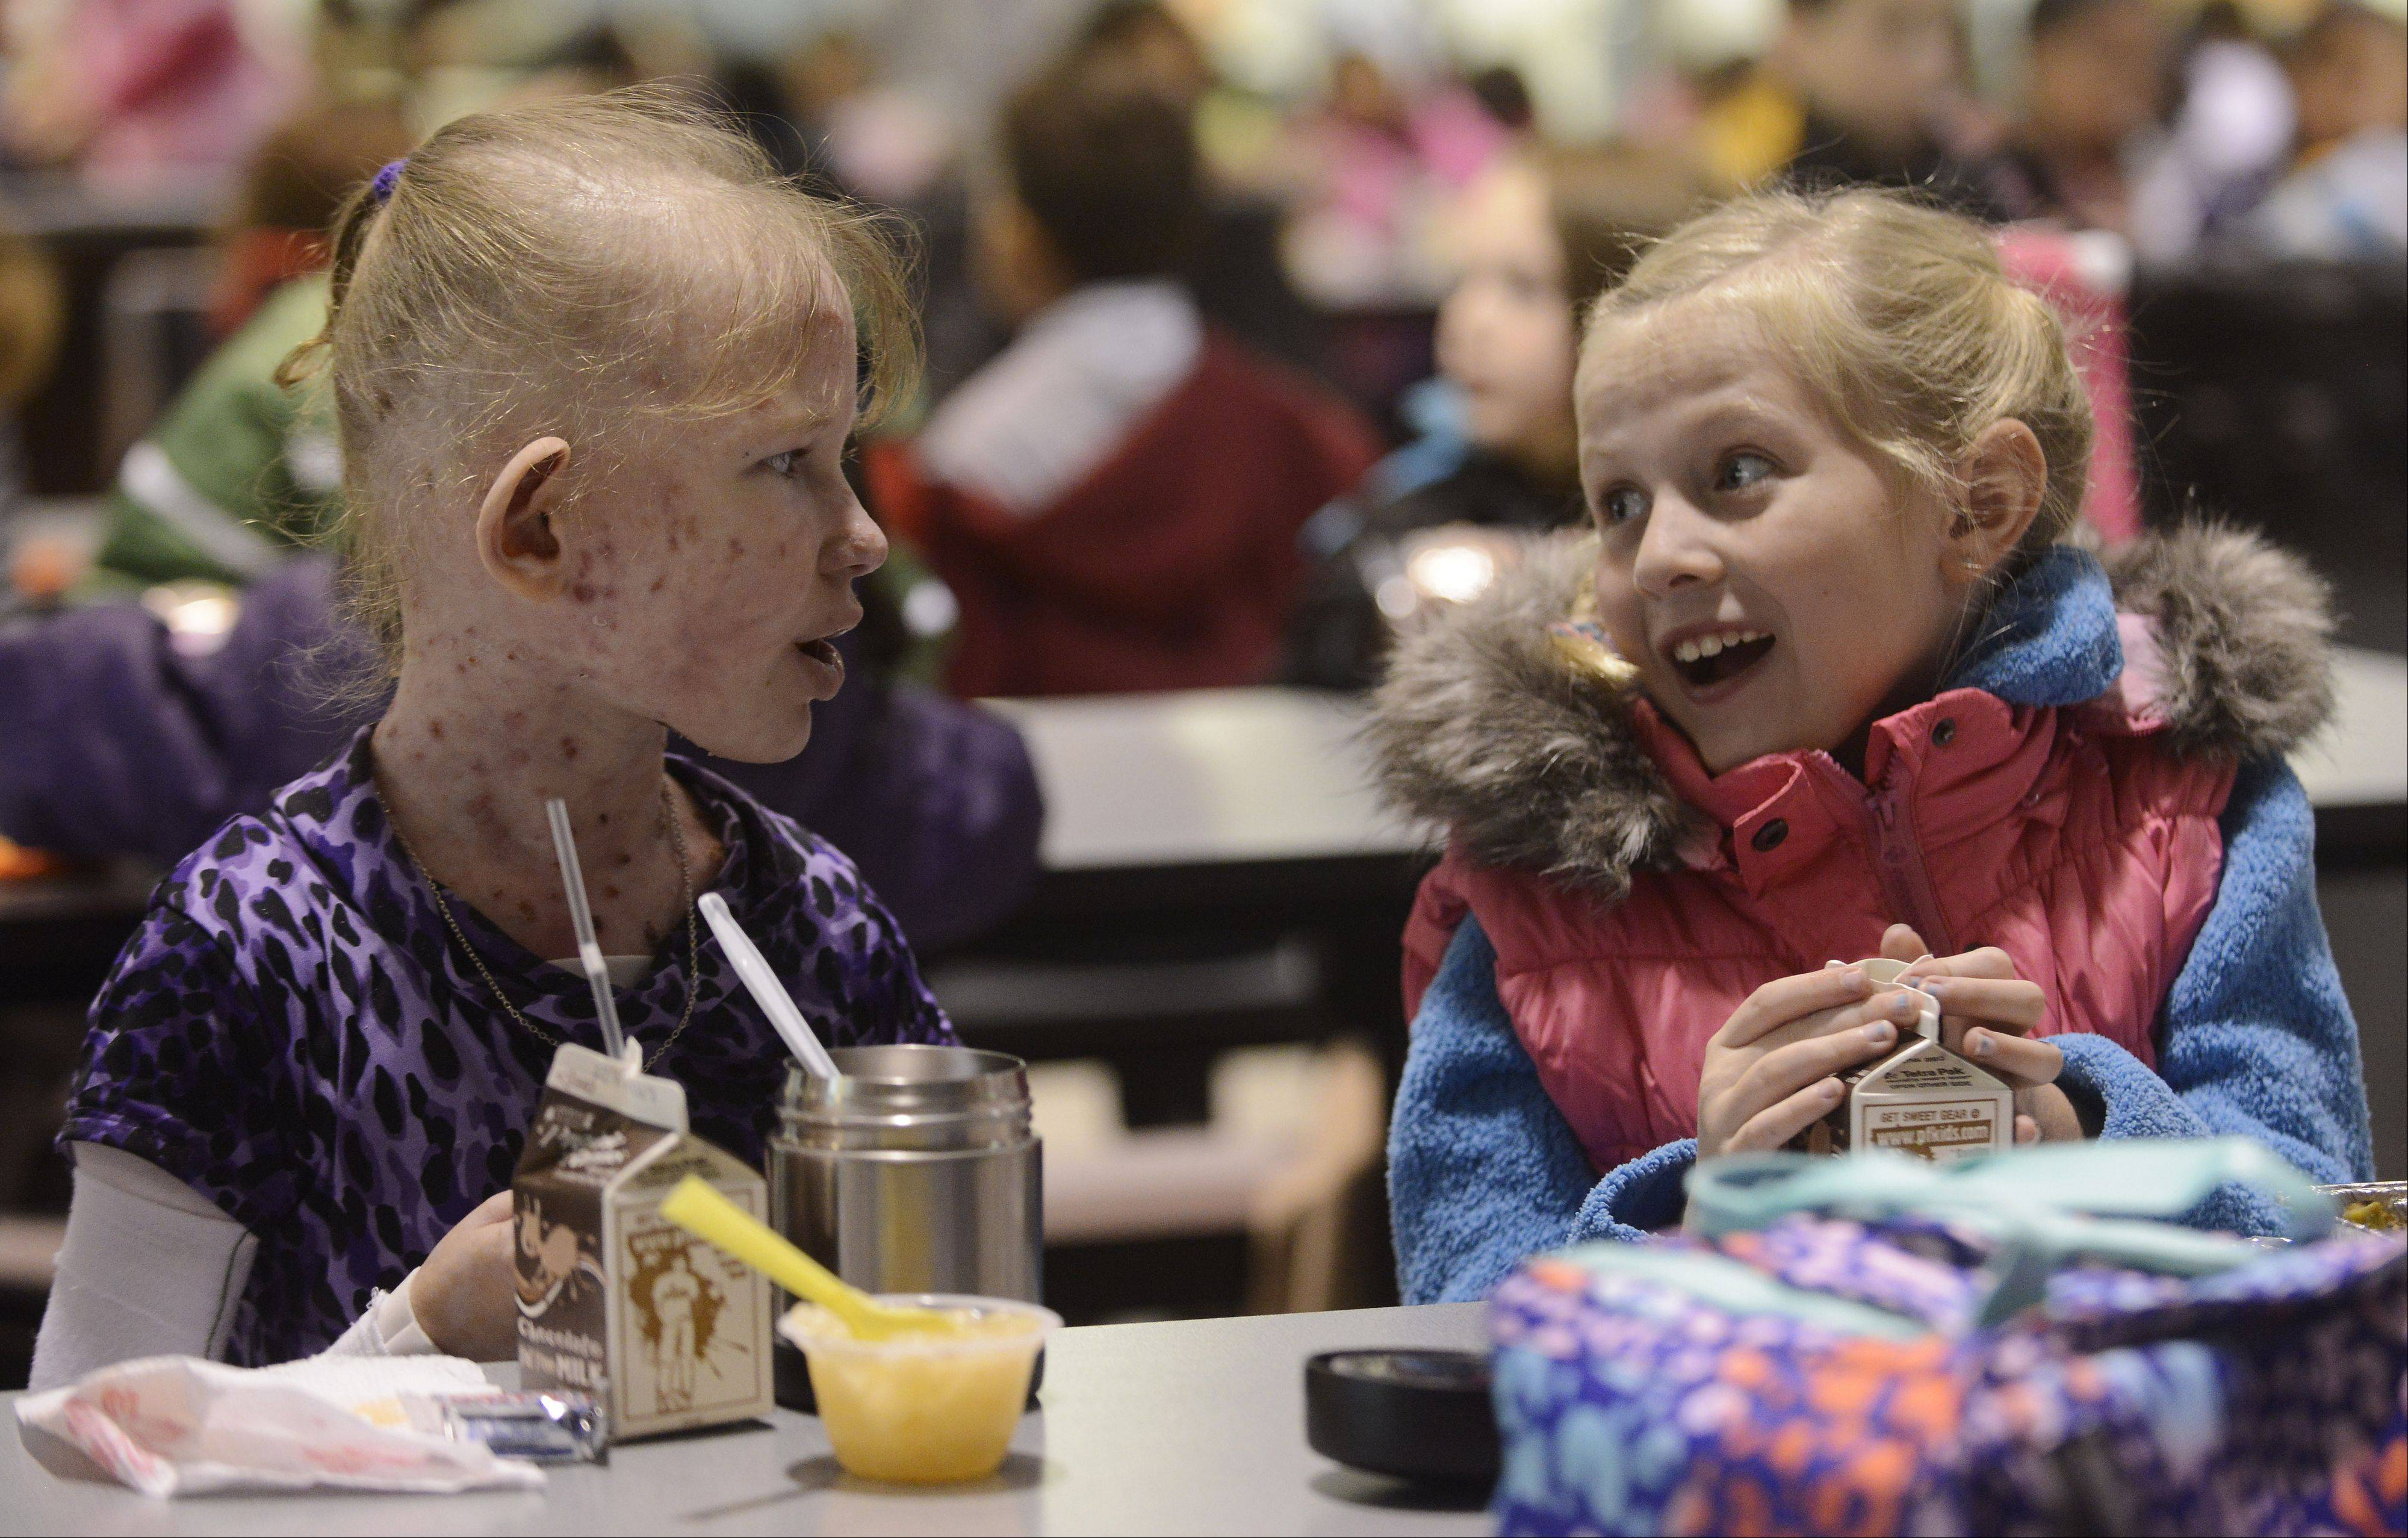 Caroline Provost, left, has lunch with friend Cece Gray at Kimball Hill School in Rolling Meadows.